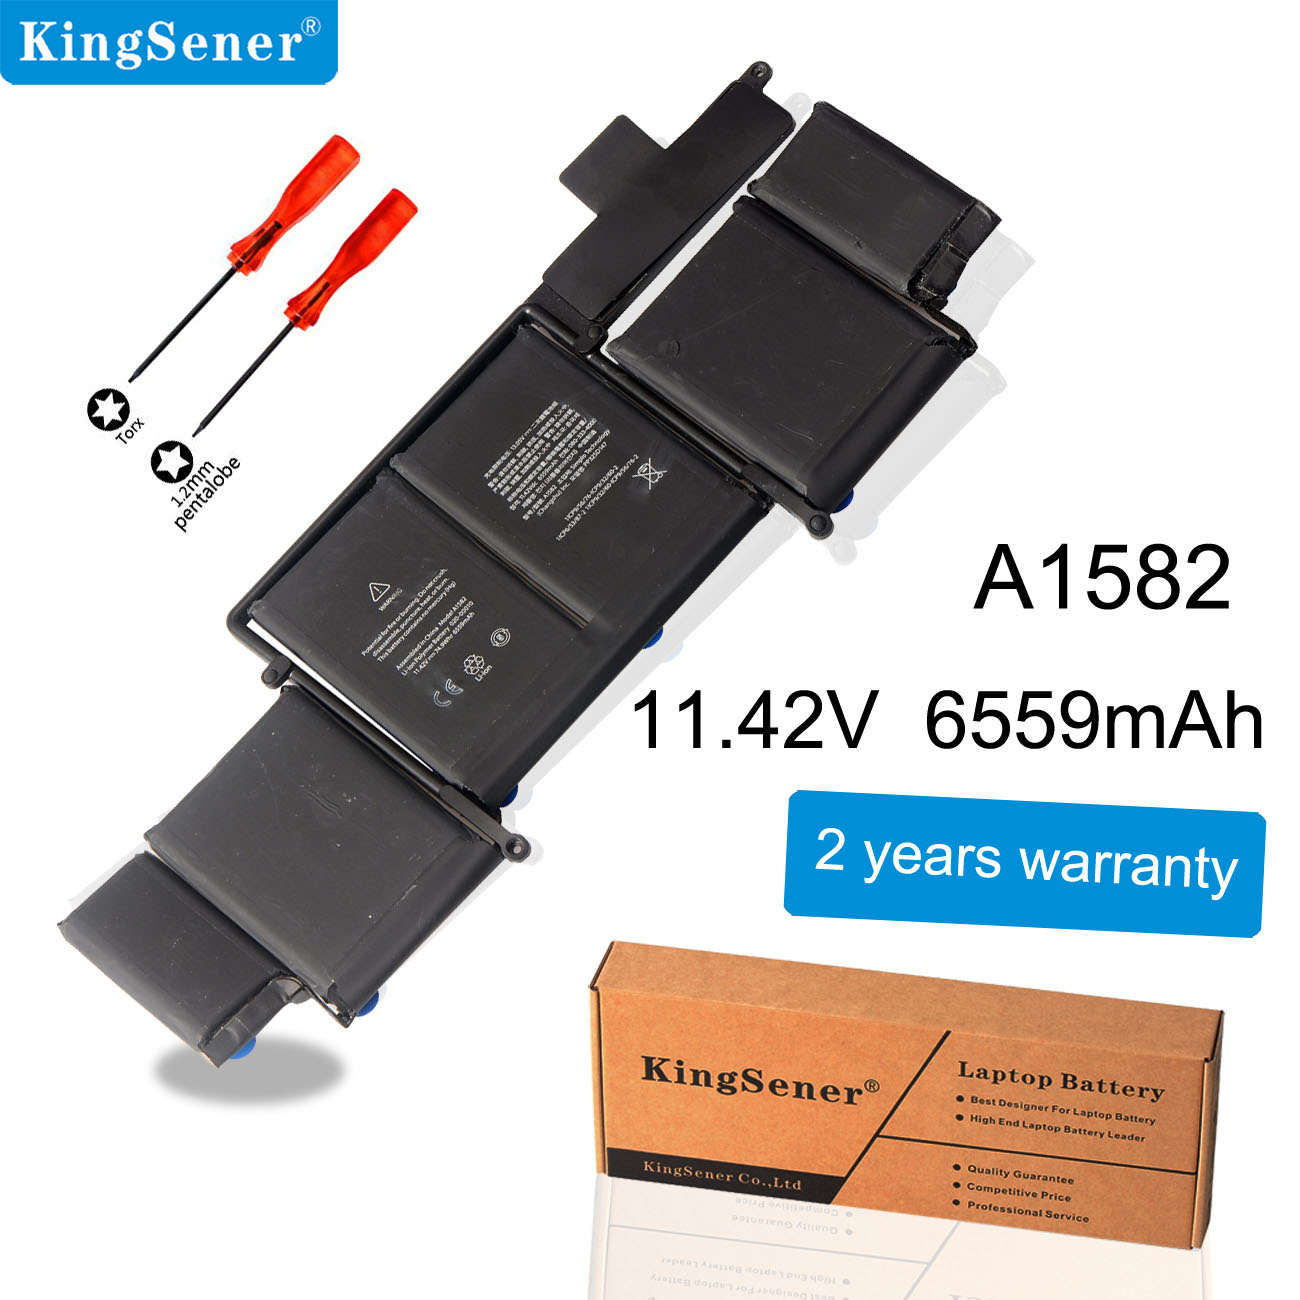 KingSener Laptop Battery A1582 for Apple MacBook Pro 13 Retina A1502 2015 year With Tools ME865 ME864 020-00010 11.42V 6559mAh image